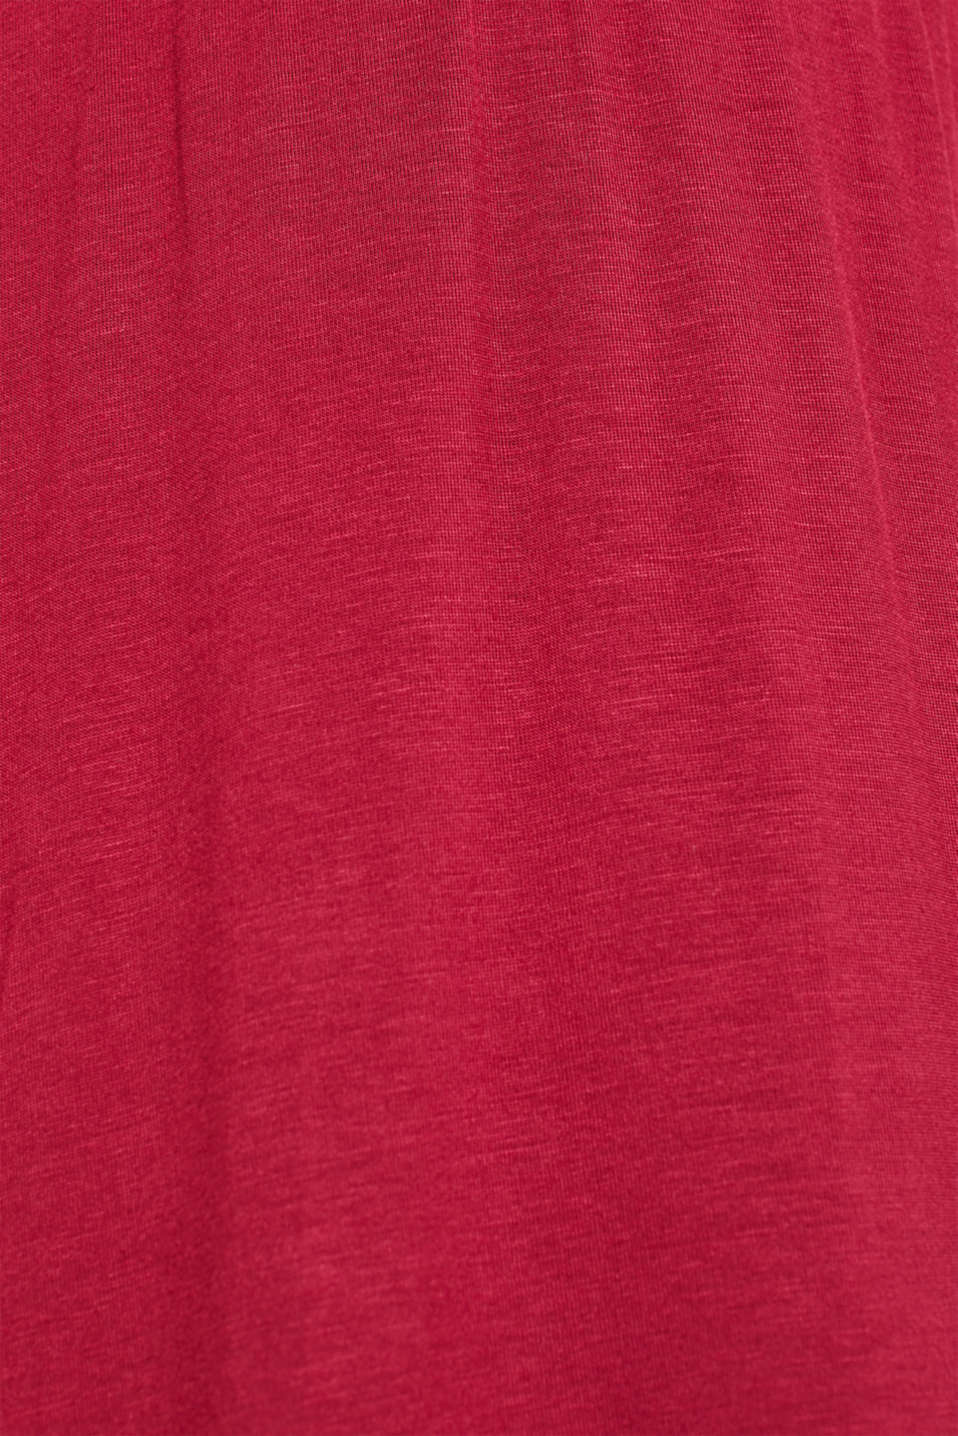 Lace-trimmed stretch jersey chemise, DARK RED, detail image number 2